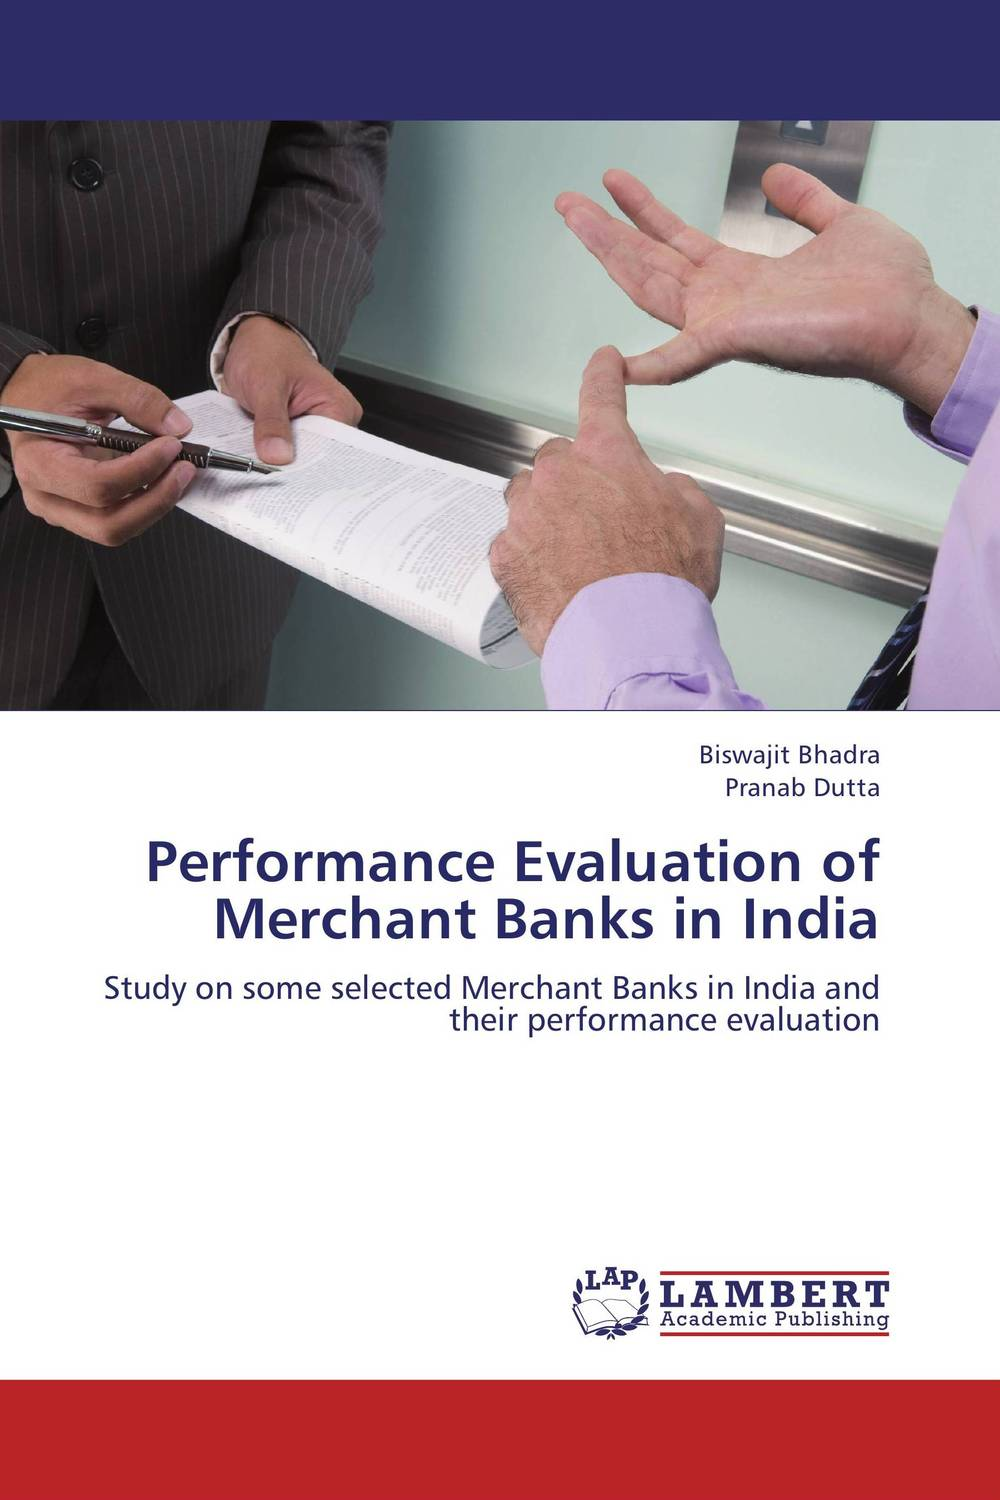 Performance Evaluation of Merchant Banks in India performance evaluation of merchant banks in india